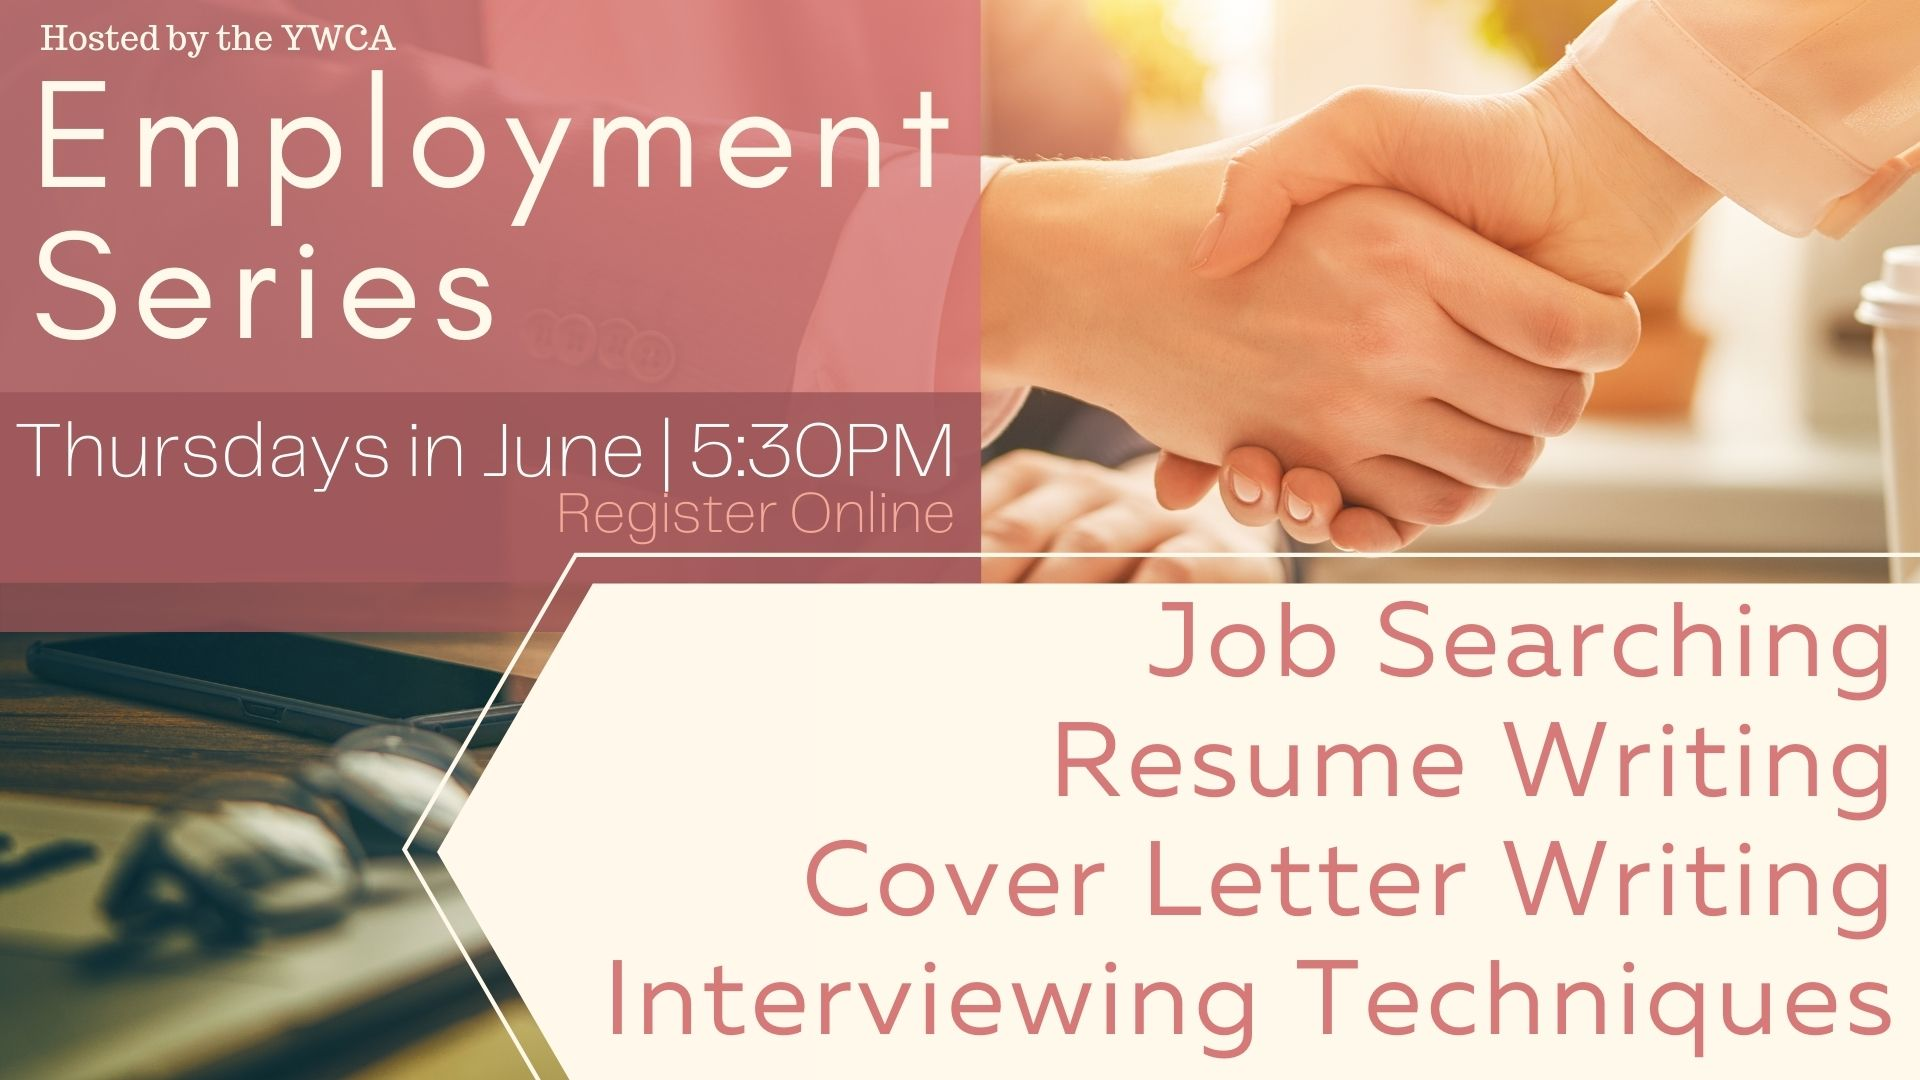 YWCA Employment Series: Cover Letter Writing